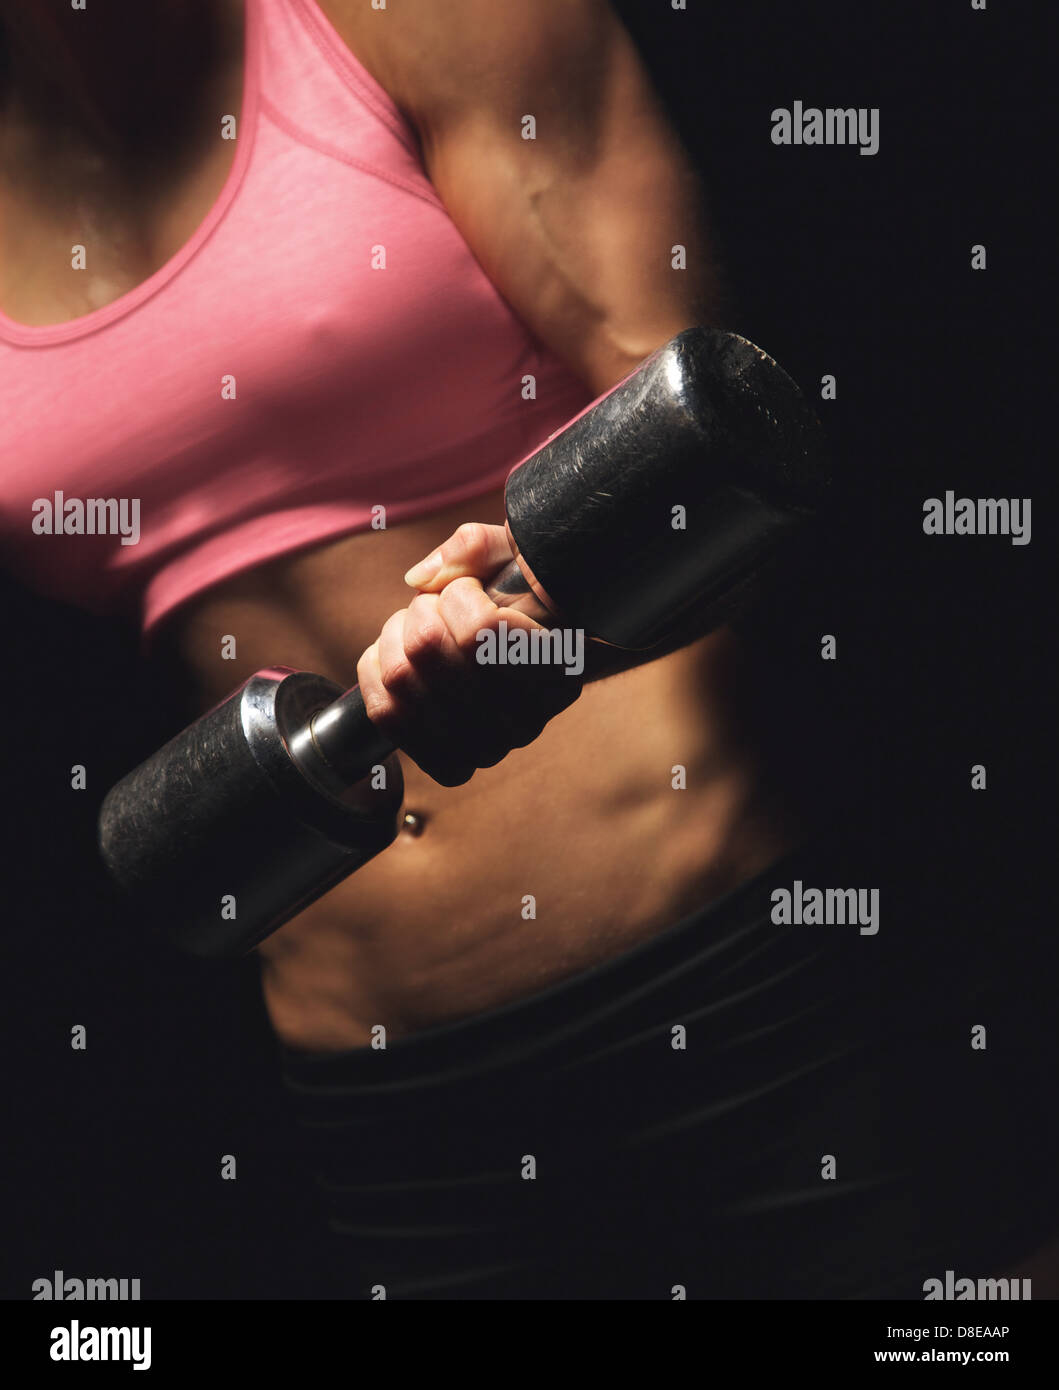 Torso of an active fitness woman doing a power workout with a dumbbell - Stock Image